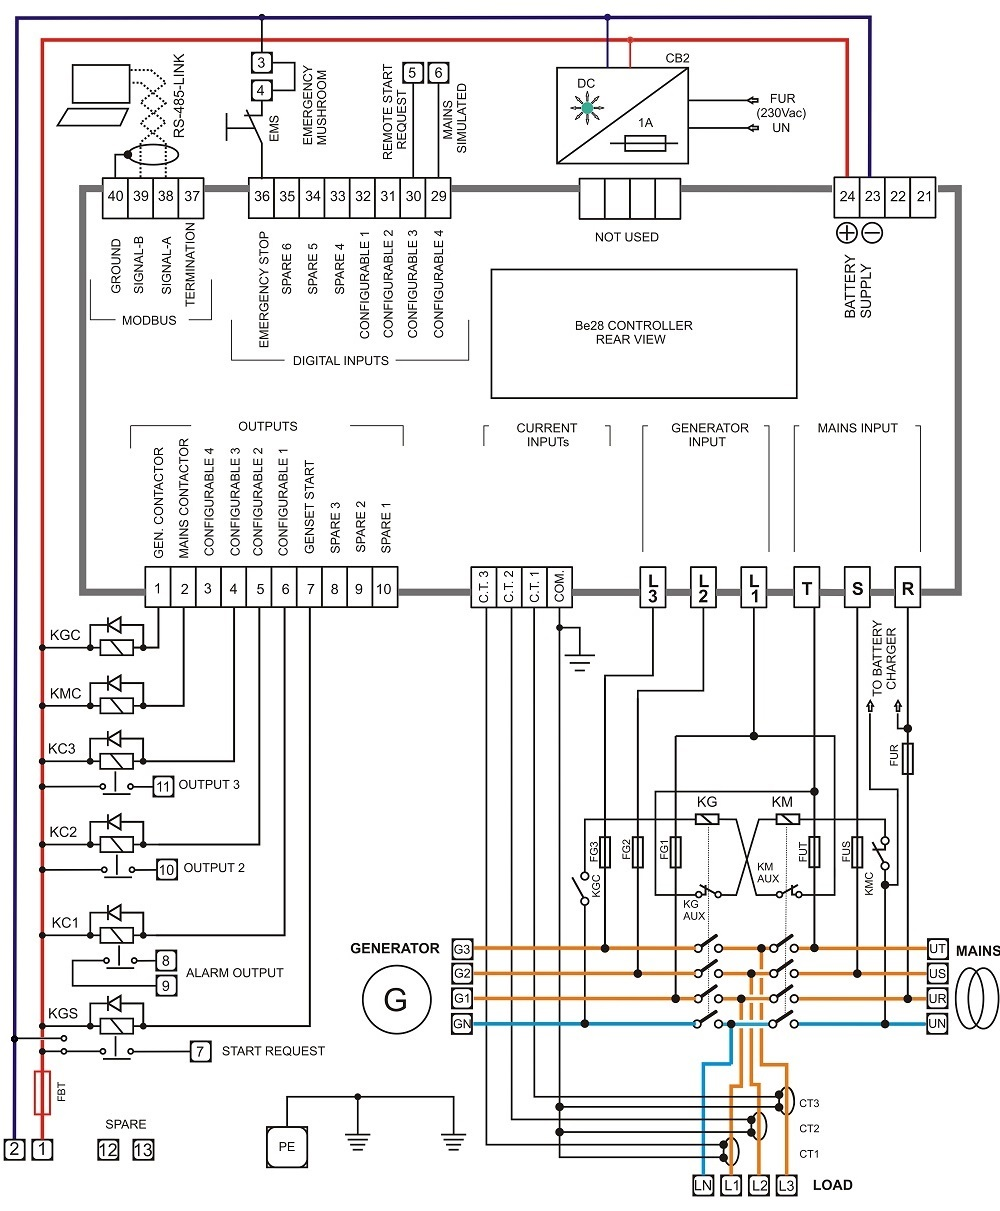 Control And Relay Panel Wiring Diagram : Ats panel genset controller